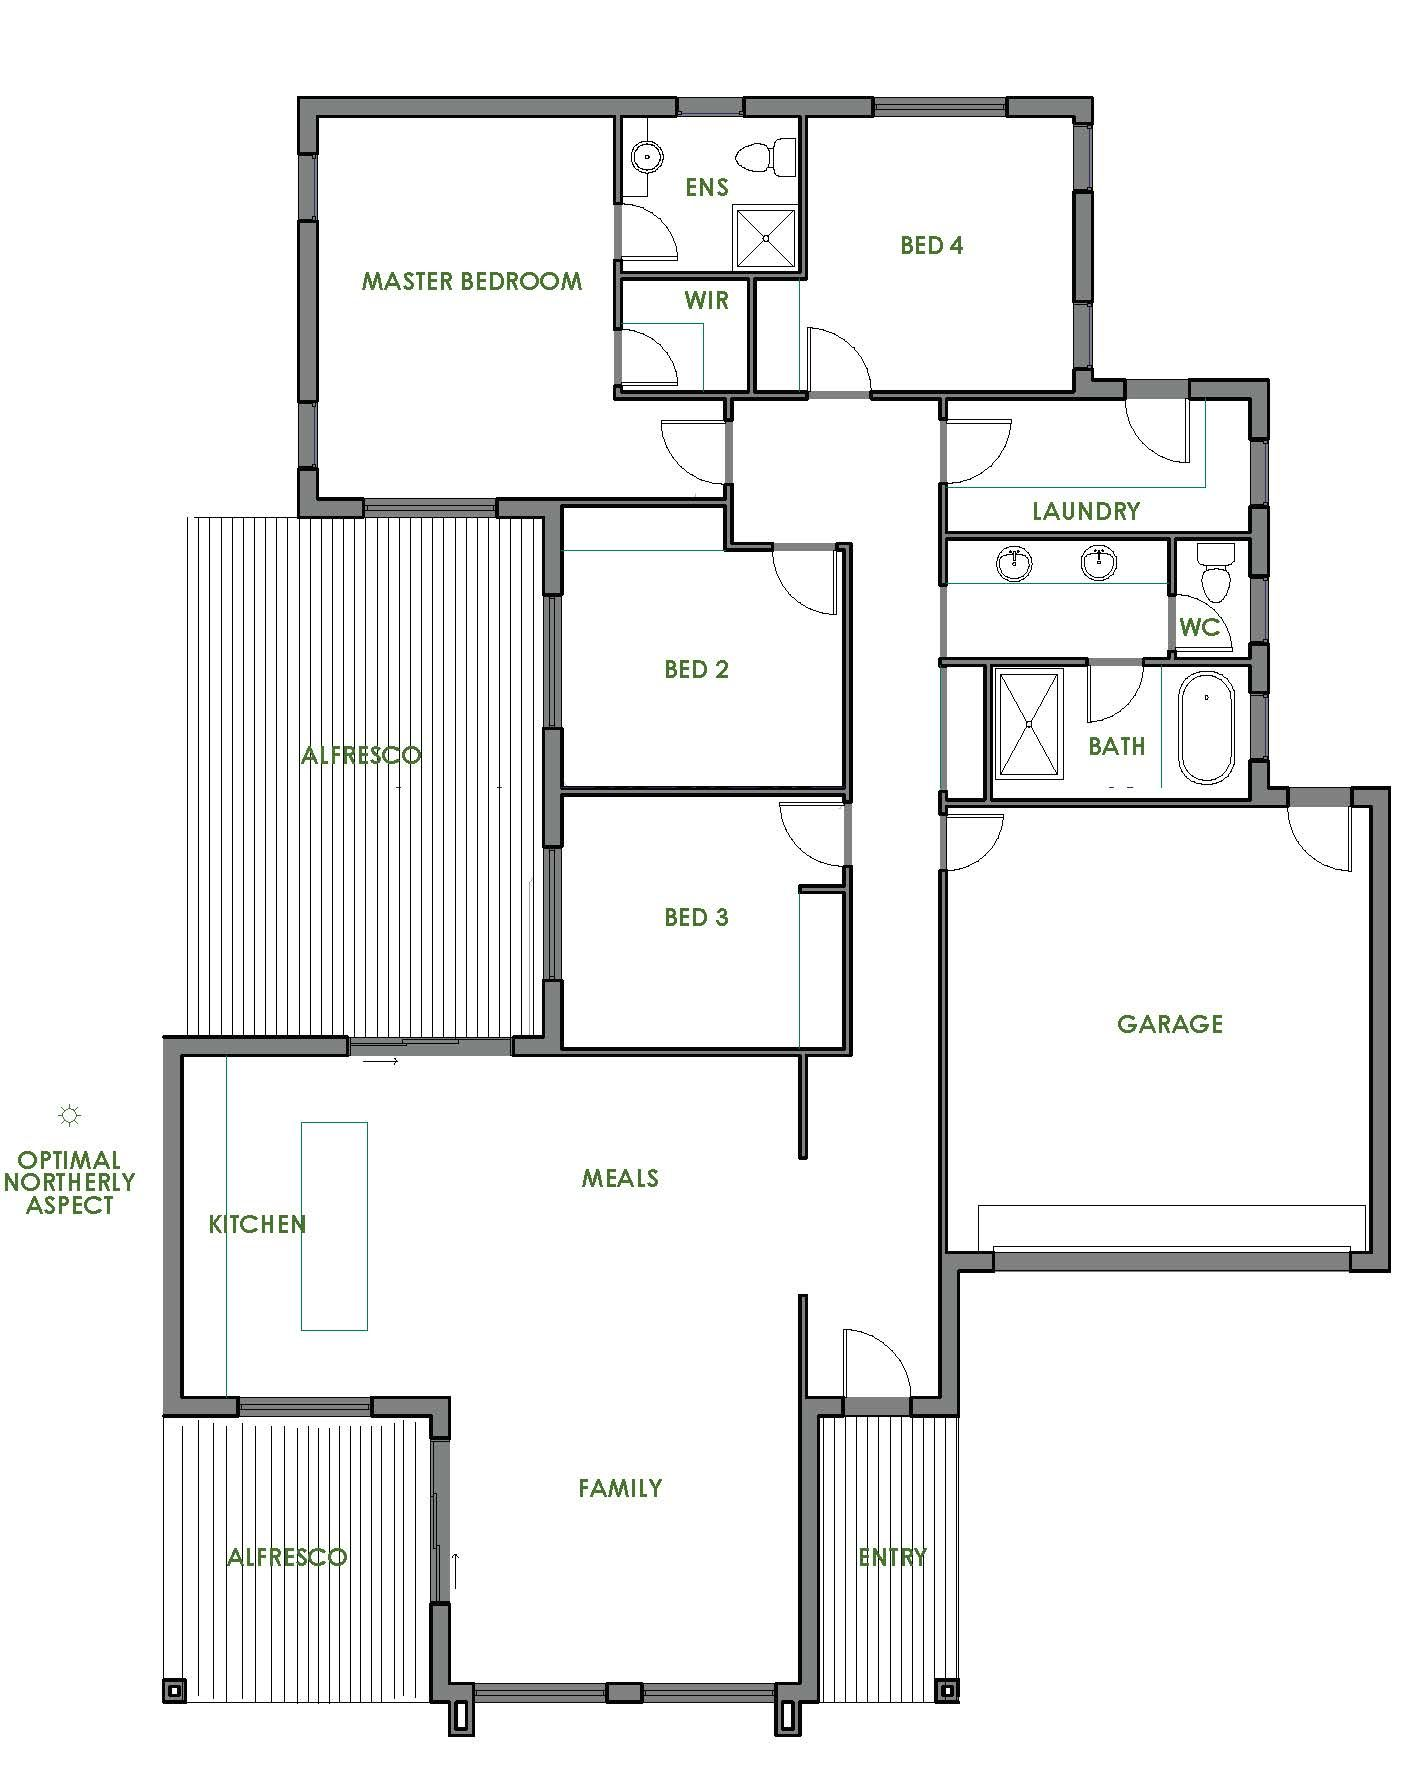 the riverland is a stunning and spacious energy efficient home dream house plans the riverland is a stunning and spacious energy efficient home design offered by green homes australia